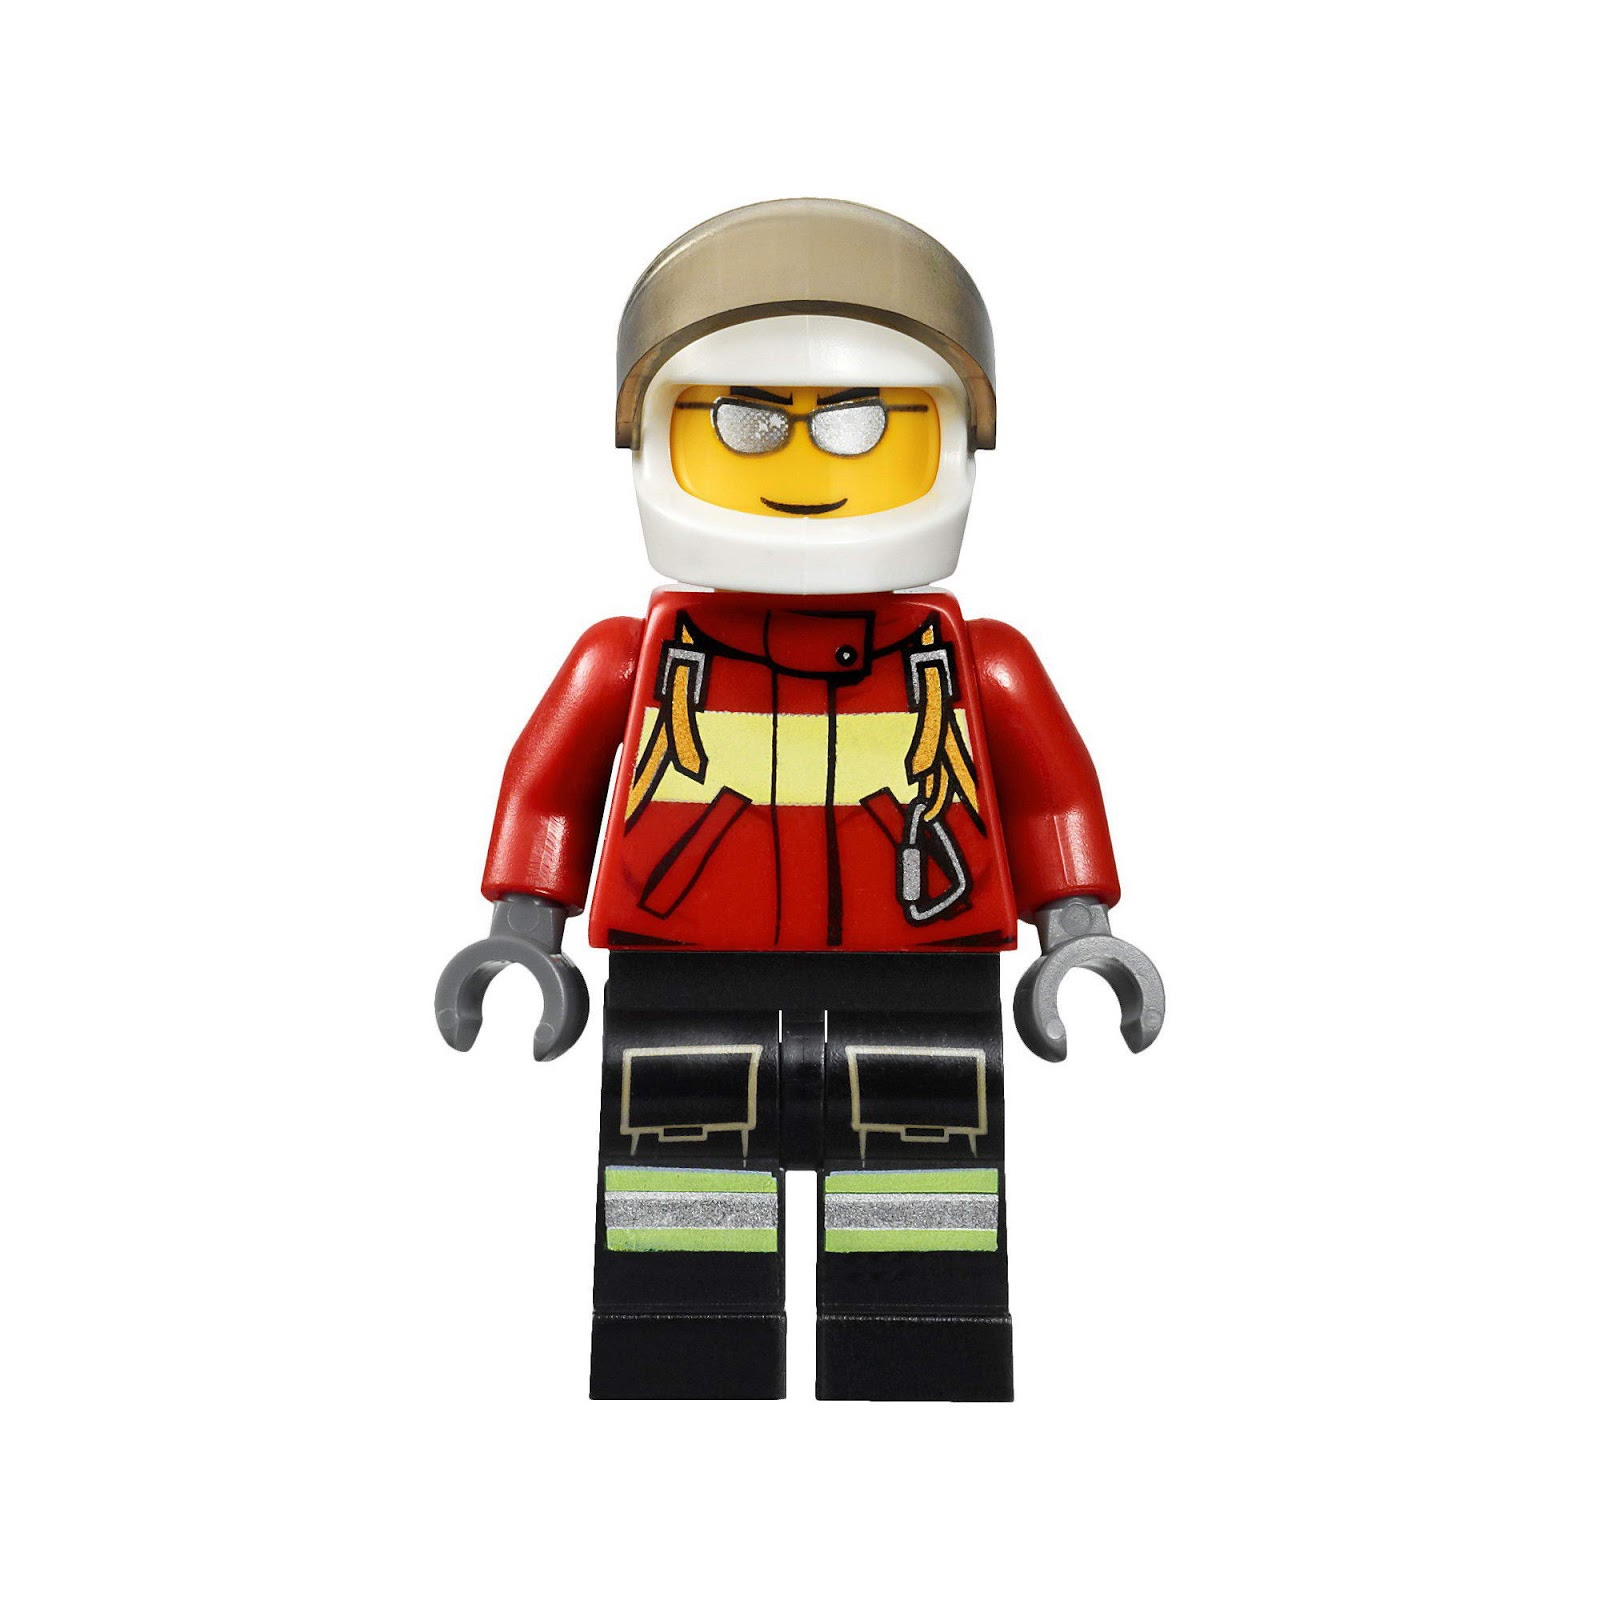 Lego City Clip Art Free Theme: city, fire, helicopter